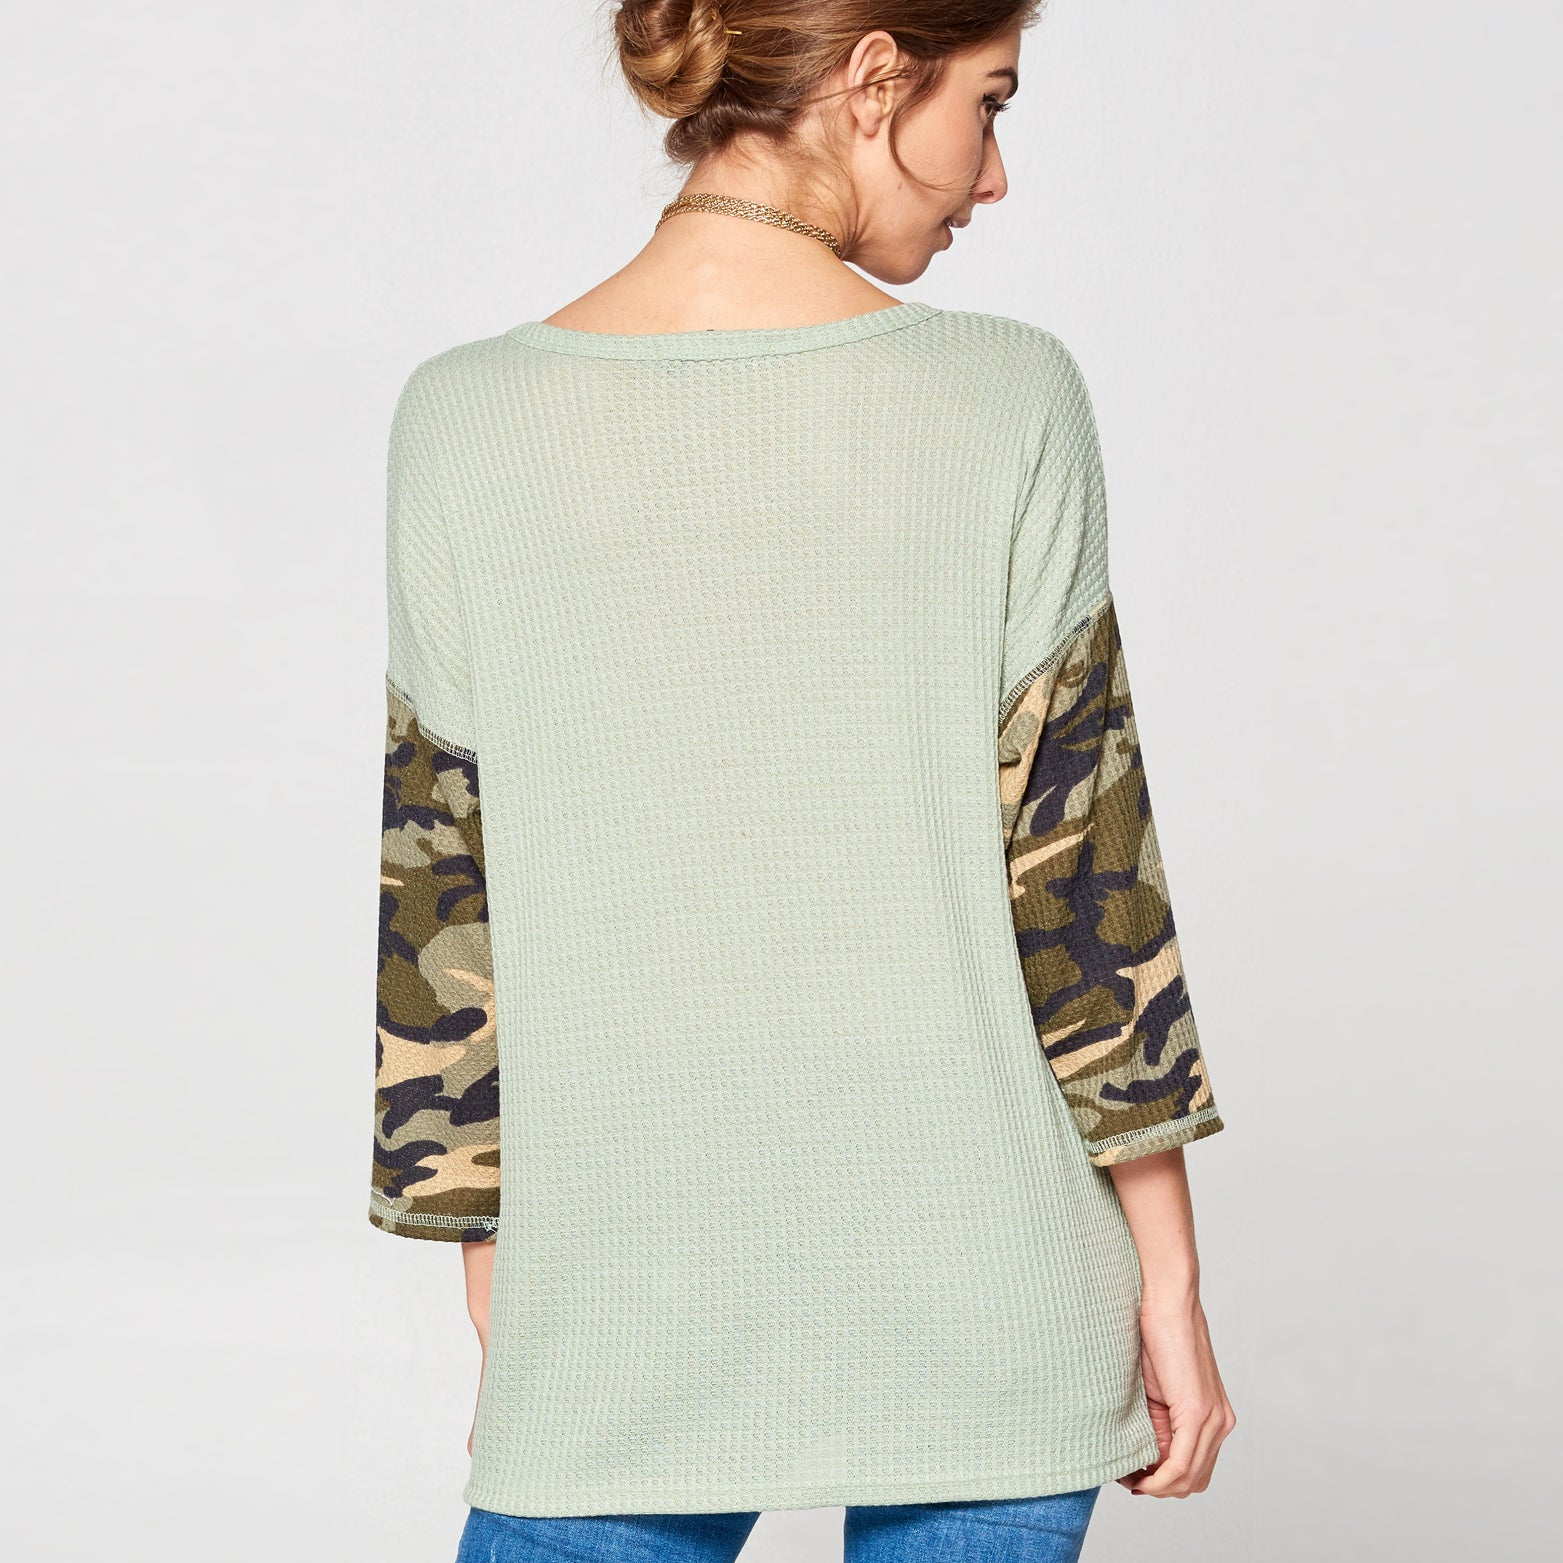 Camo Sleeve Thermal Top